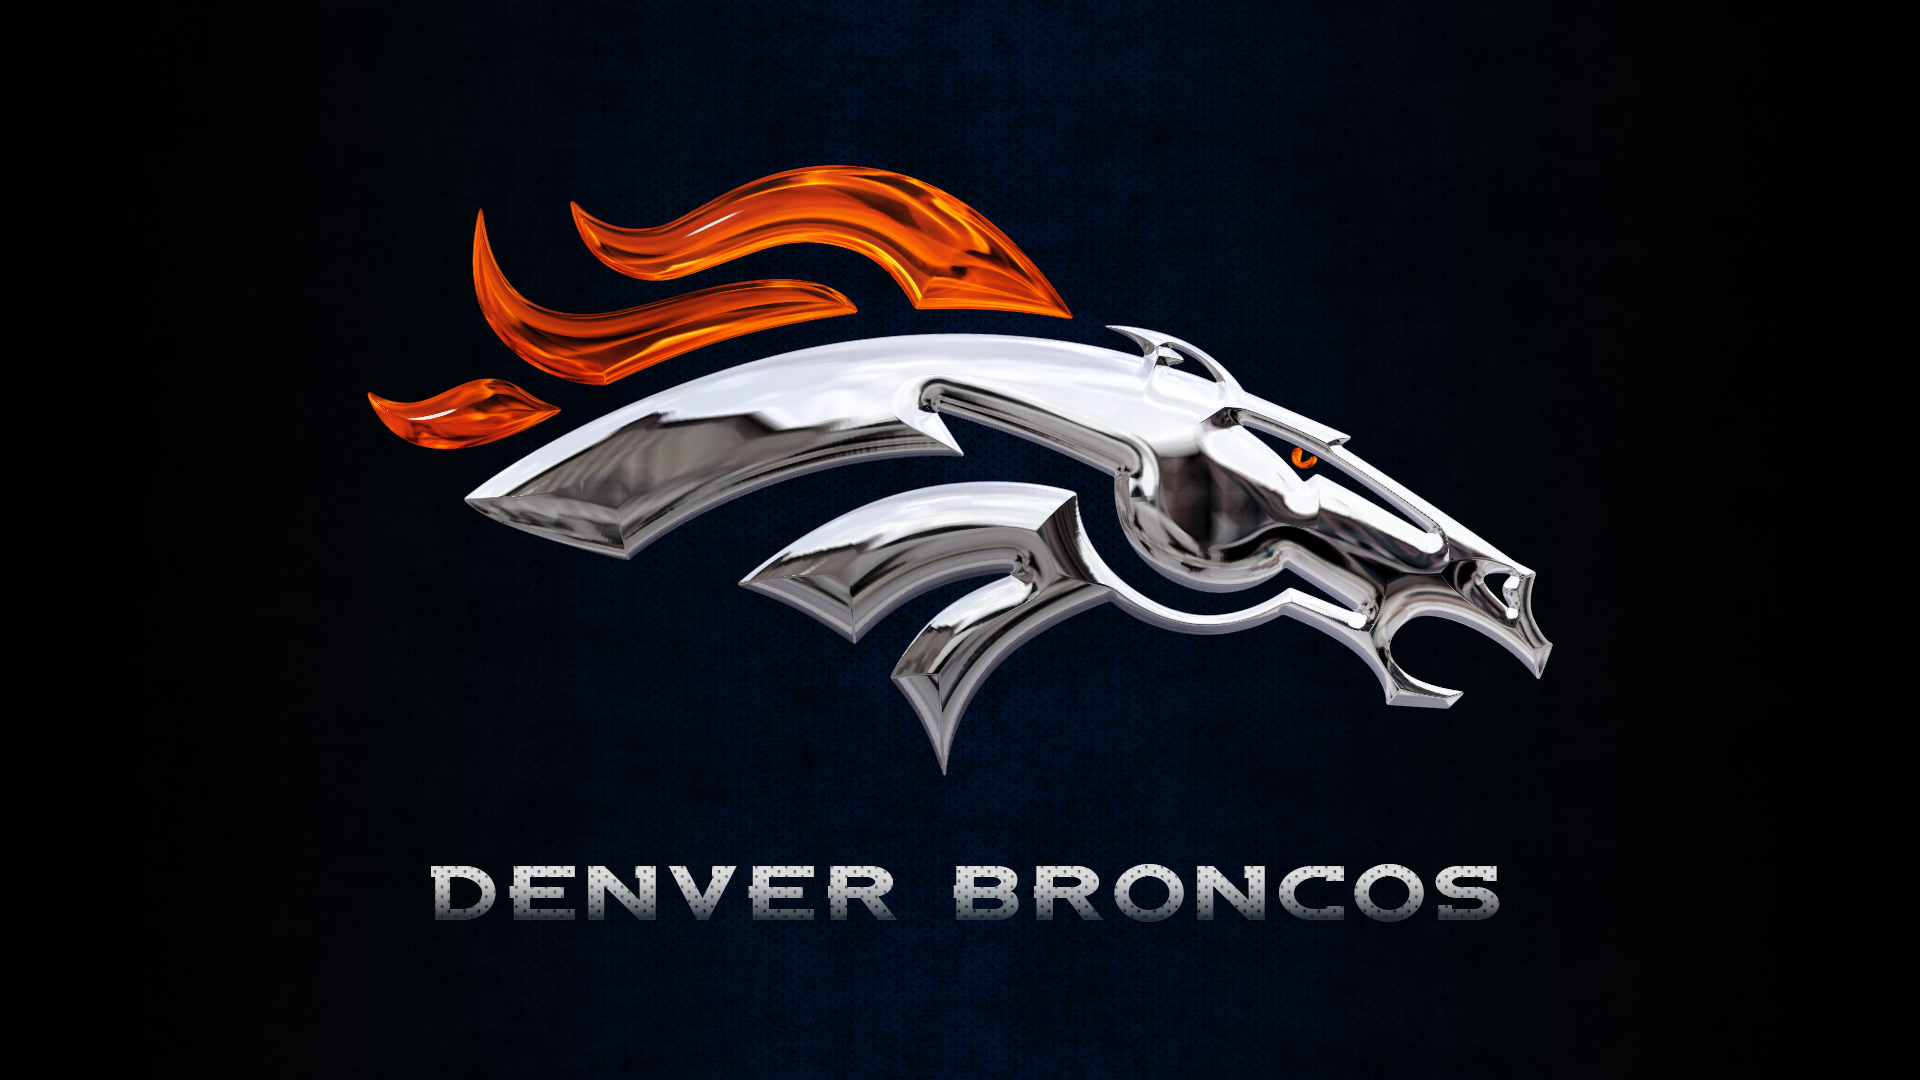 Broncos wallpaper 1920x1080 83841